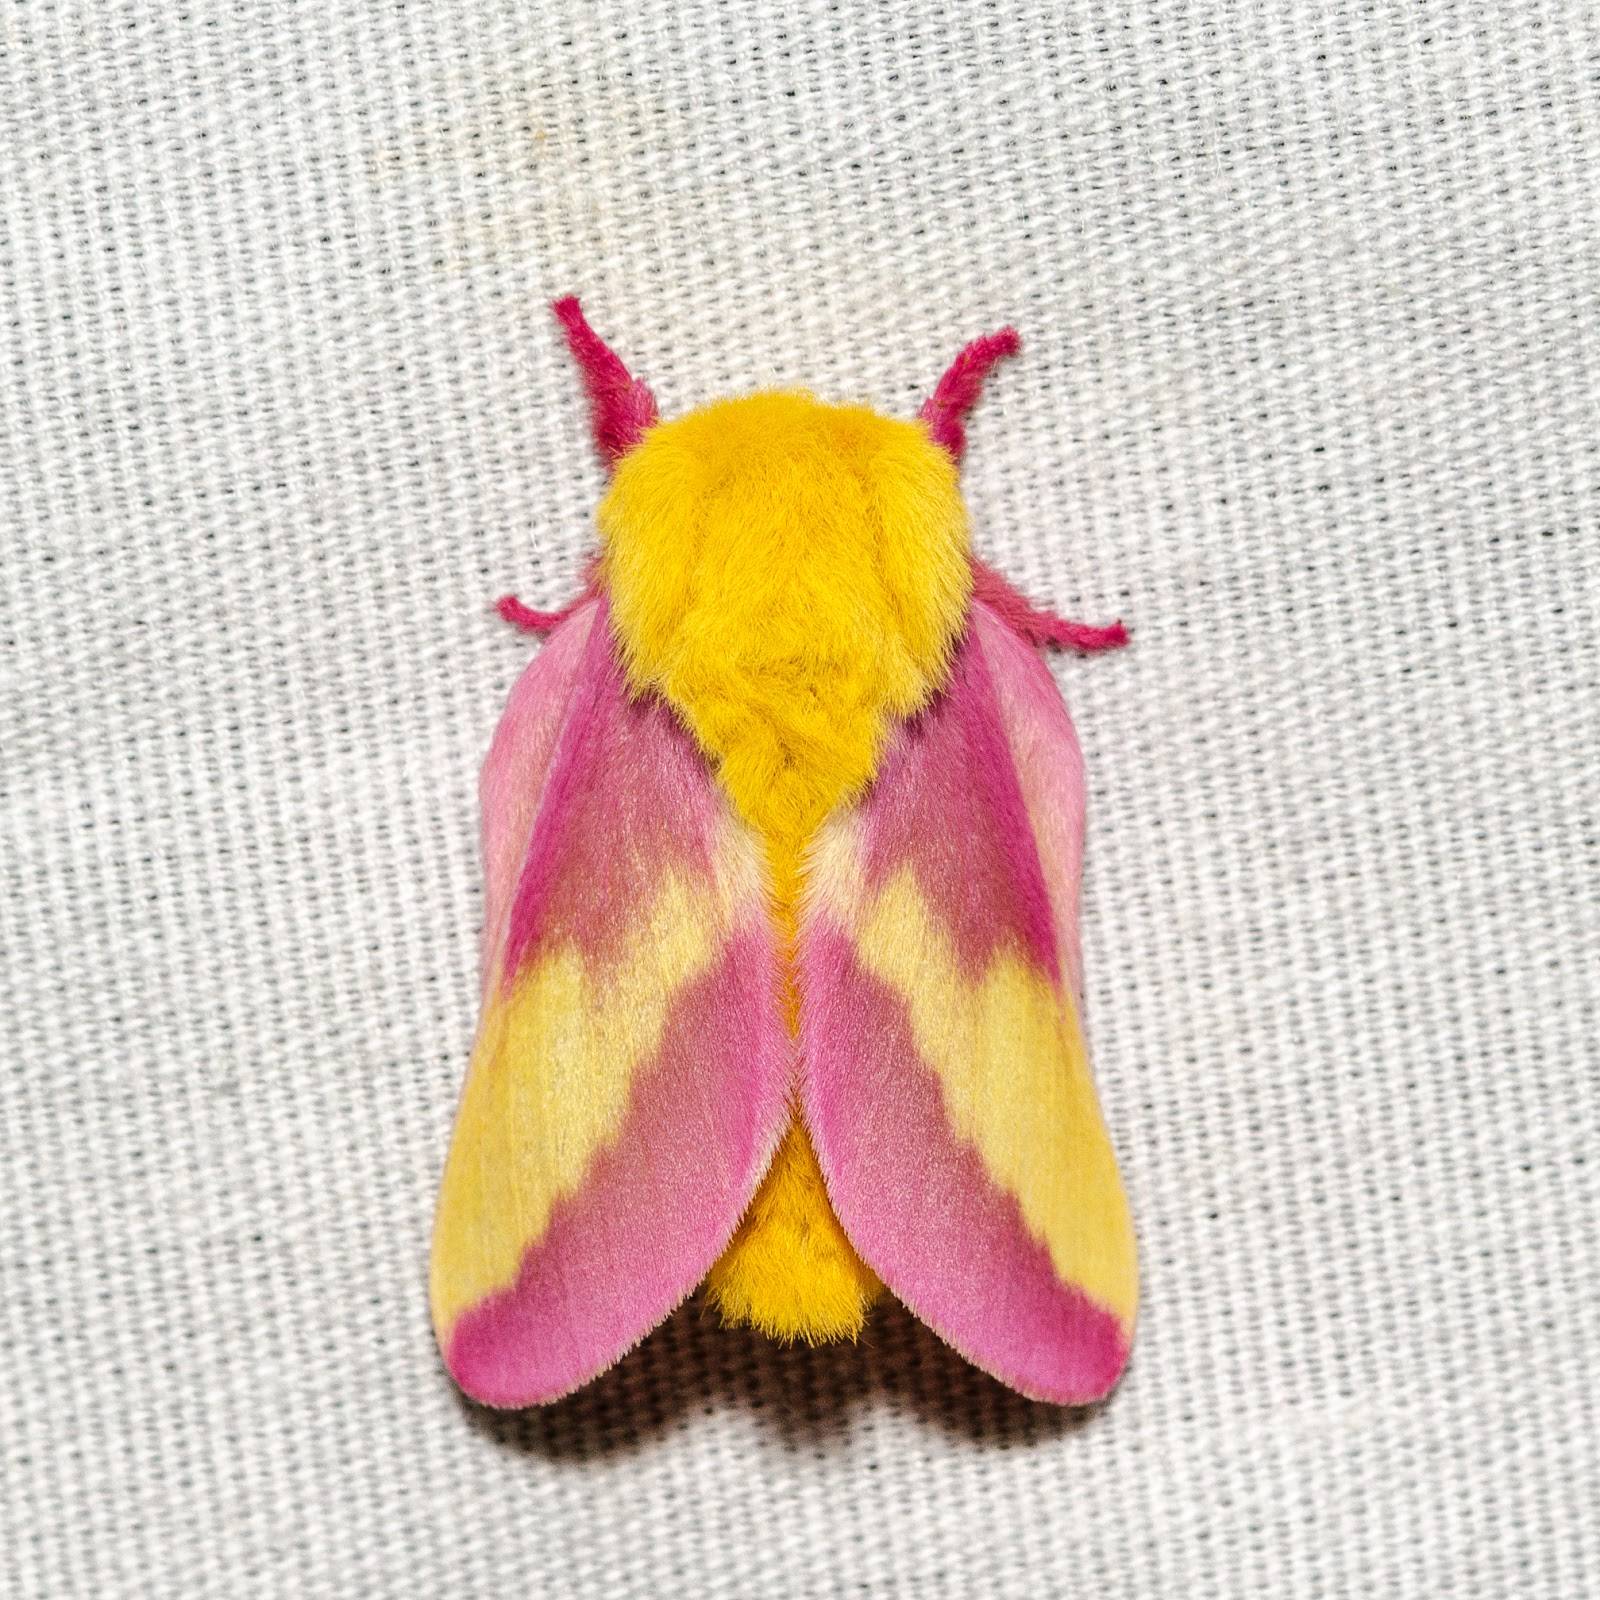 Rosy Maple Moth (Dryocampa rubicunda) Ohio